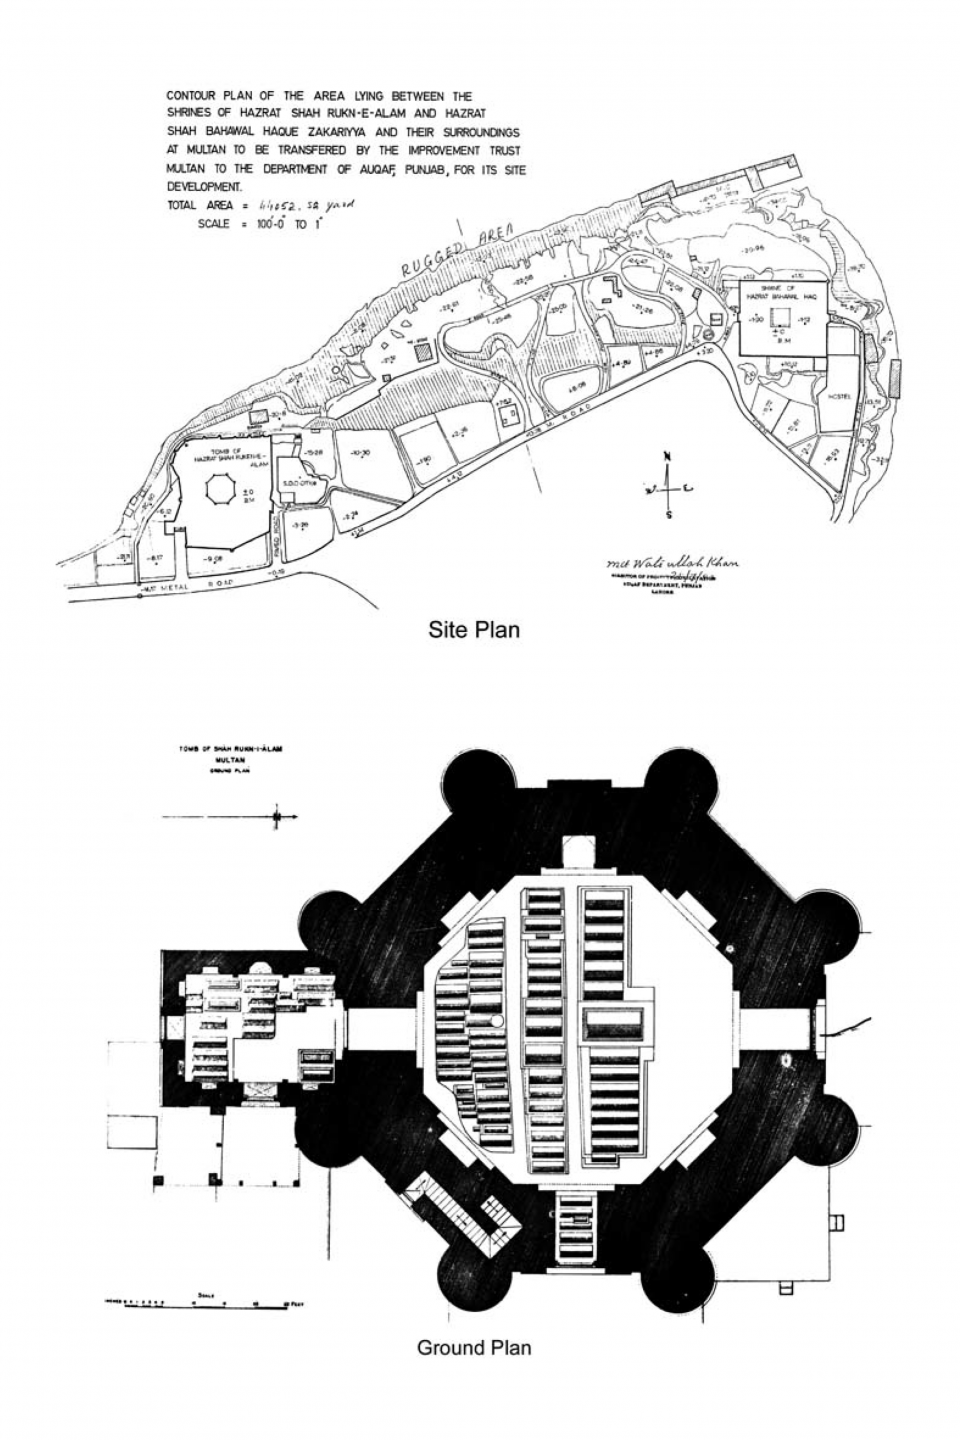 Site and Ground Plans